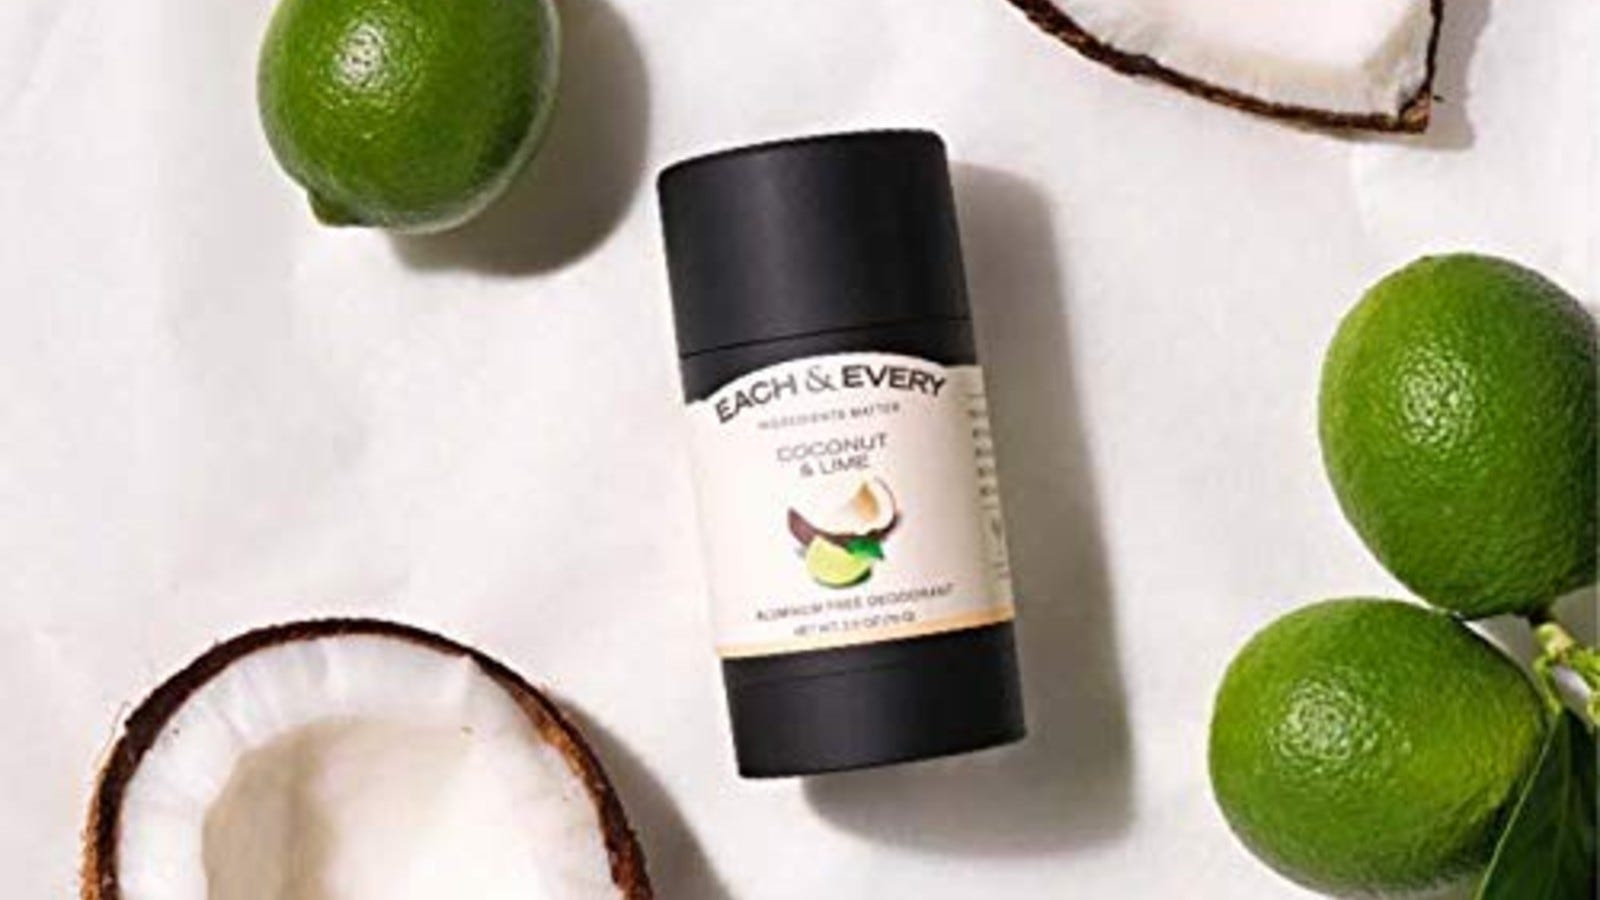 each and every deodorant in black and white packaging on white background with limes and coconuts around it